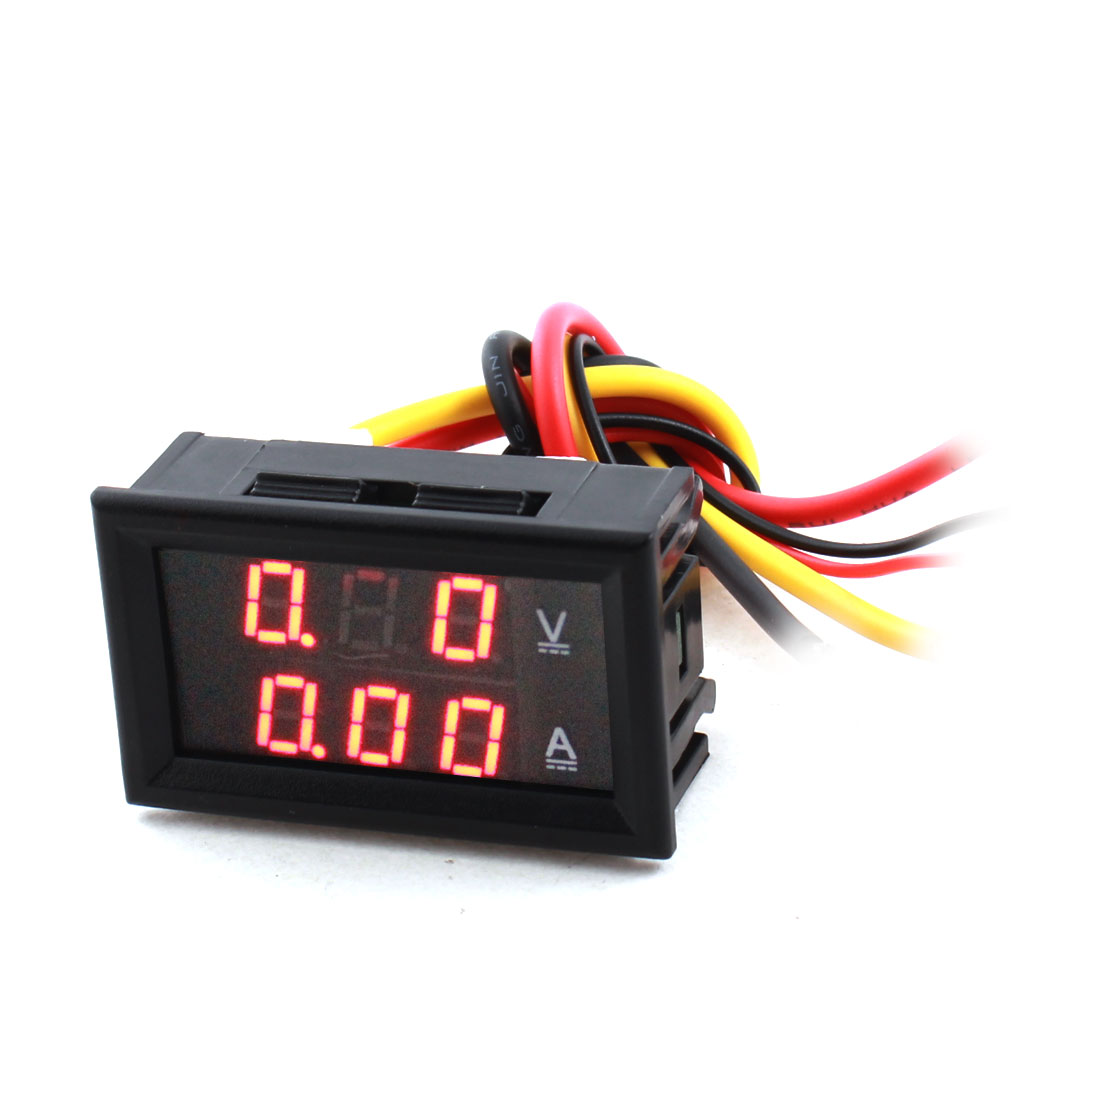 DC 0-100V 10A 7-Segment Red Digits 3-Bit LED Digital Display Panel Gauge Ammeter Voltmeter Volt Ampere Meter w Cable